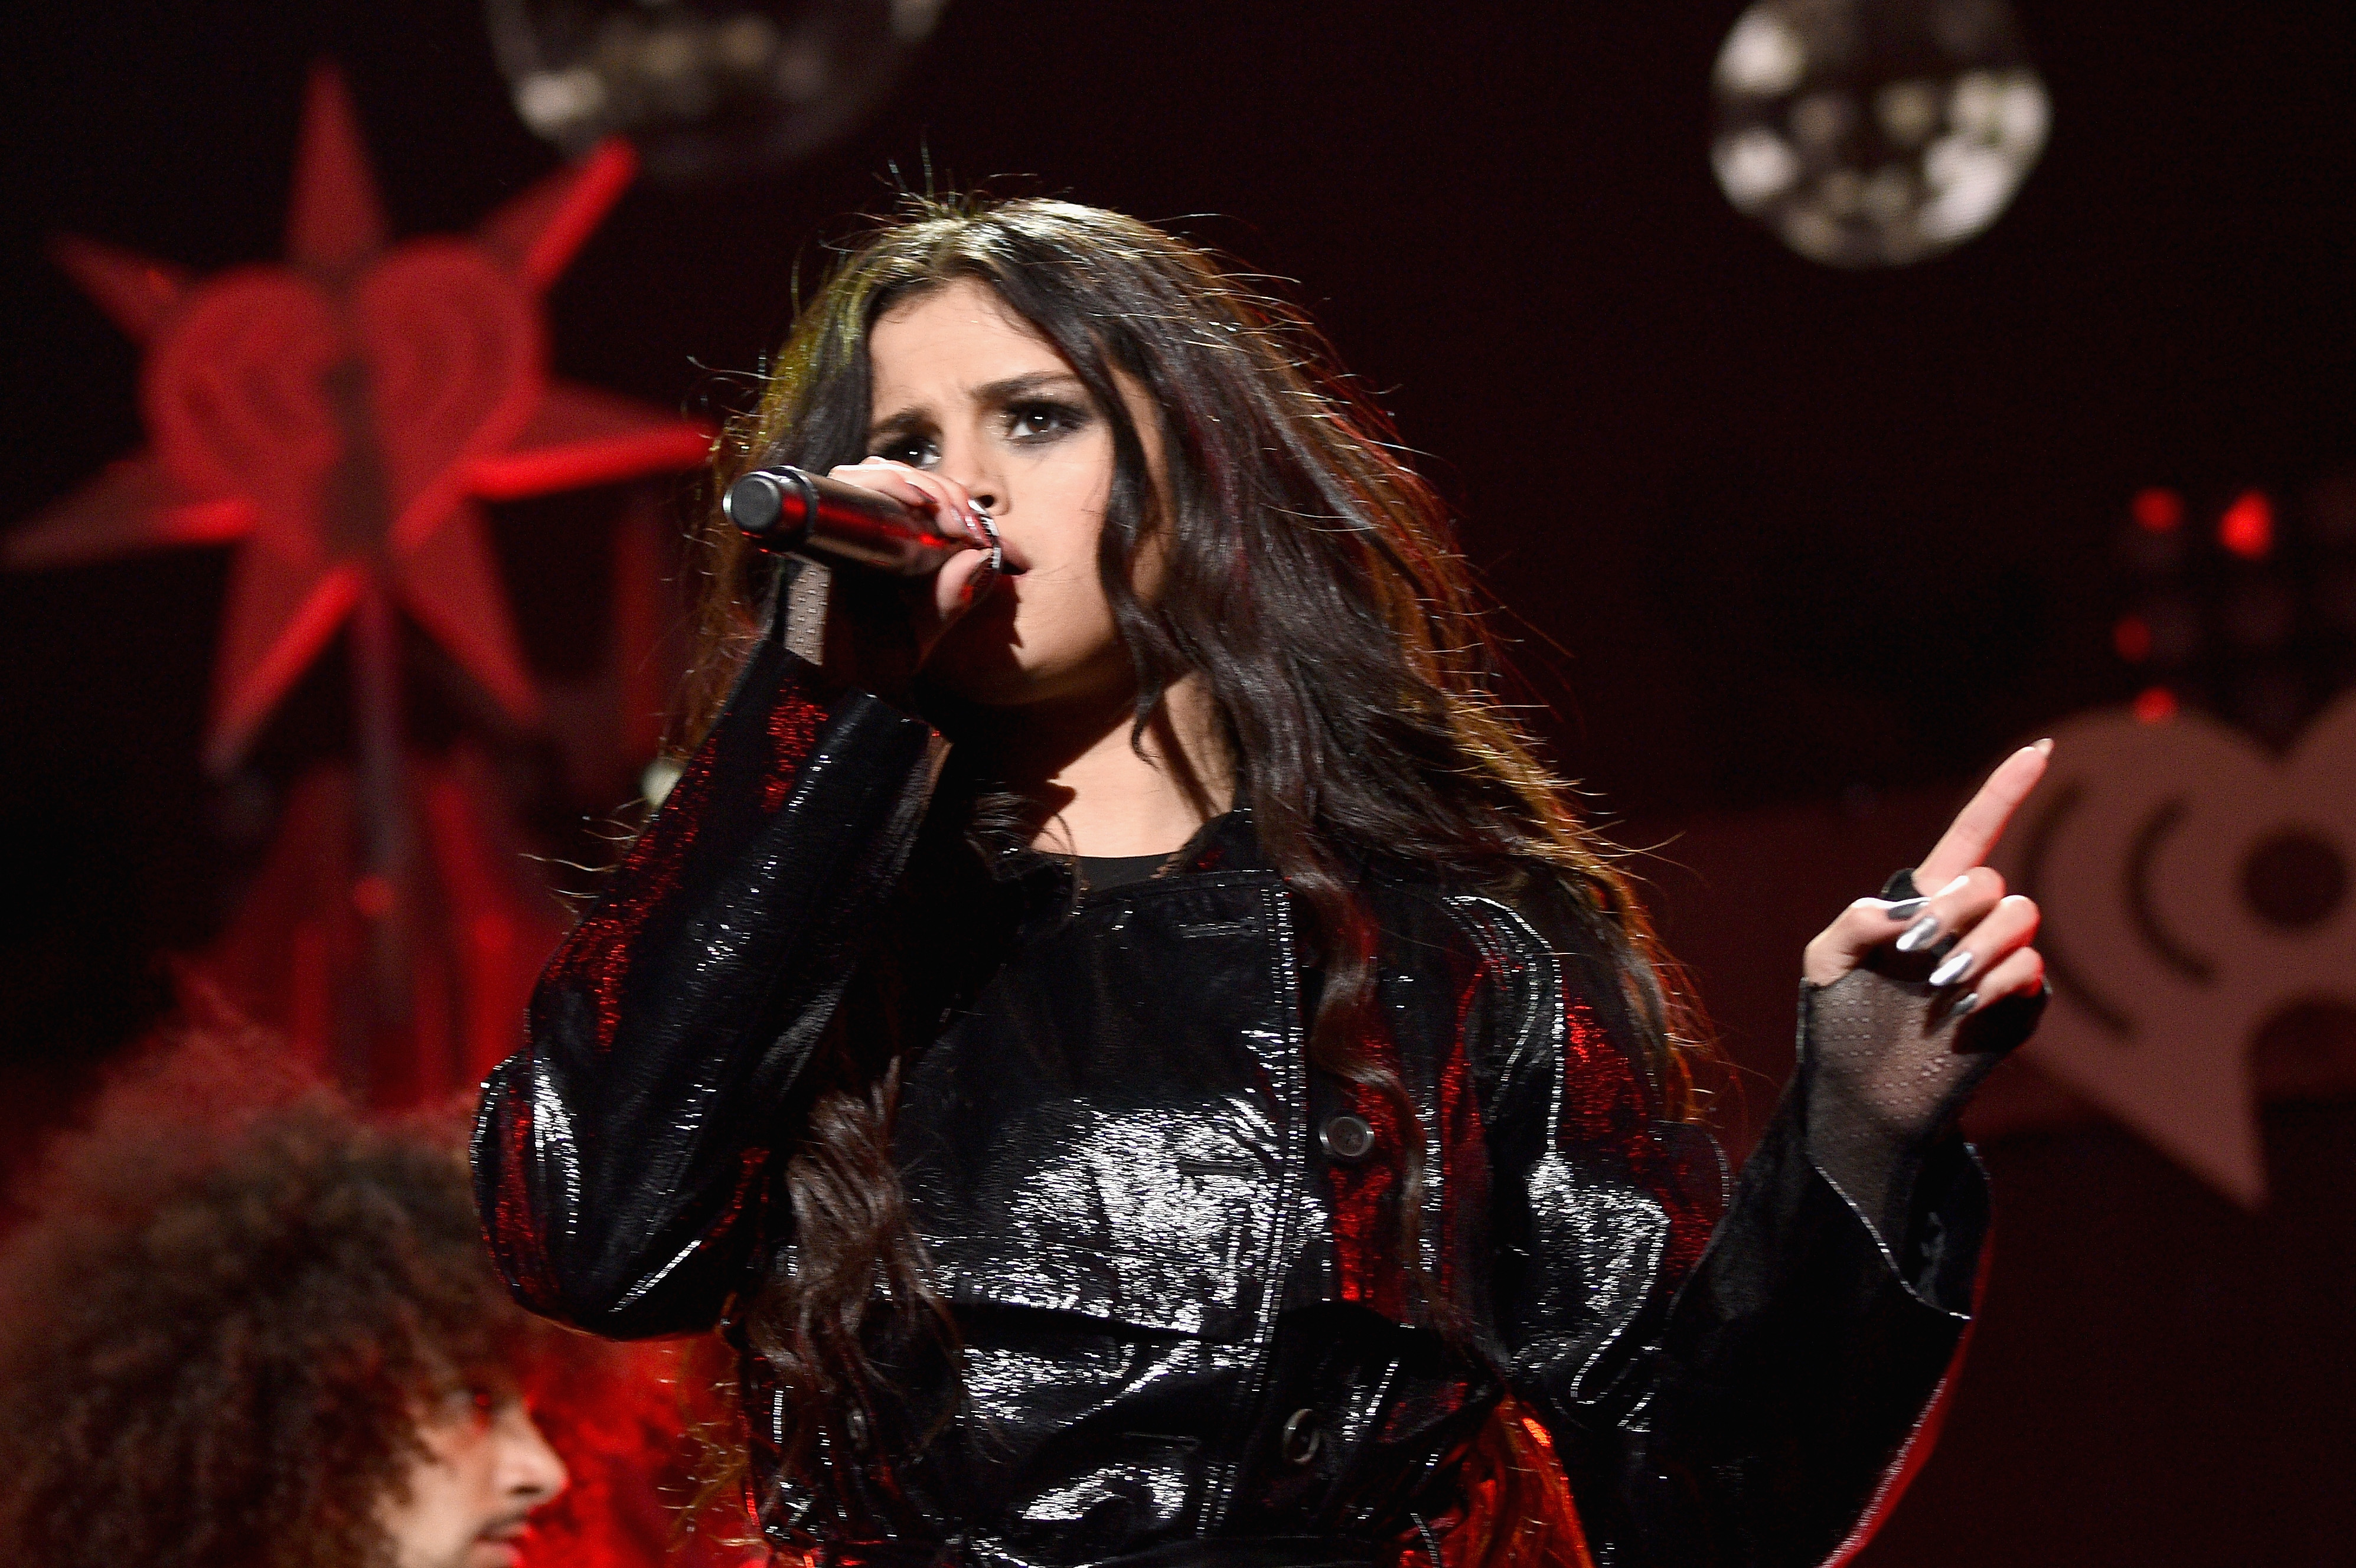 Selena Gomez Trashes Justin Bieber On Stage GettyImages 501026630